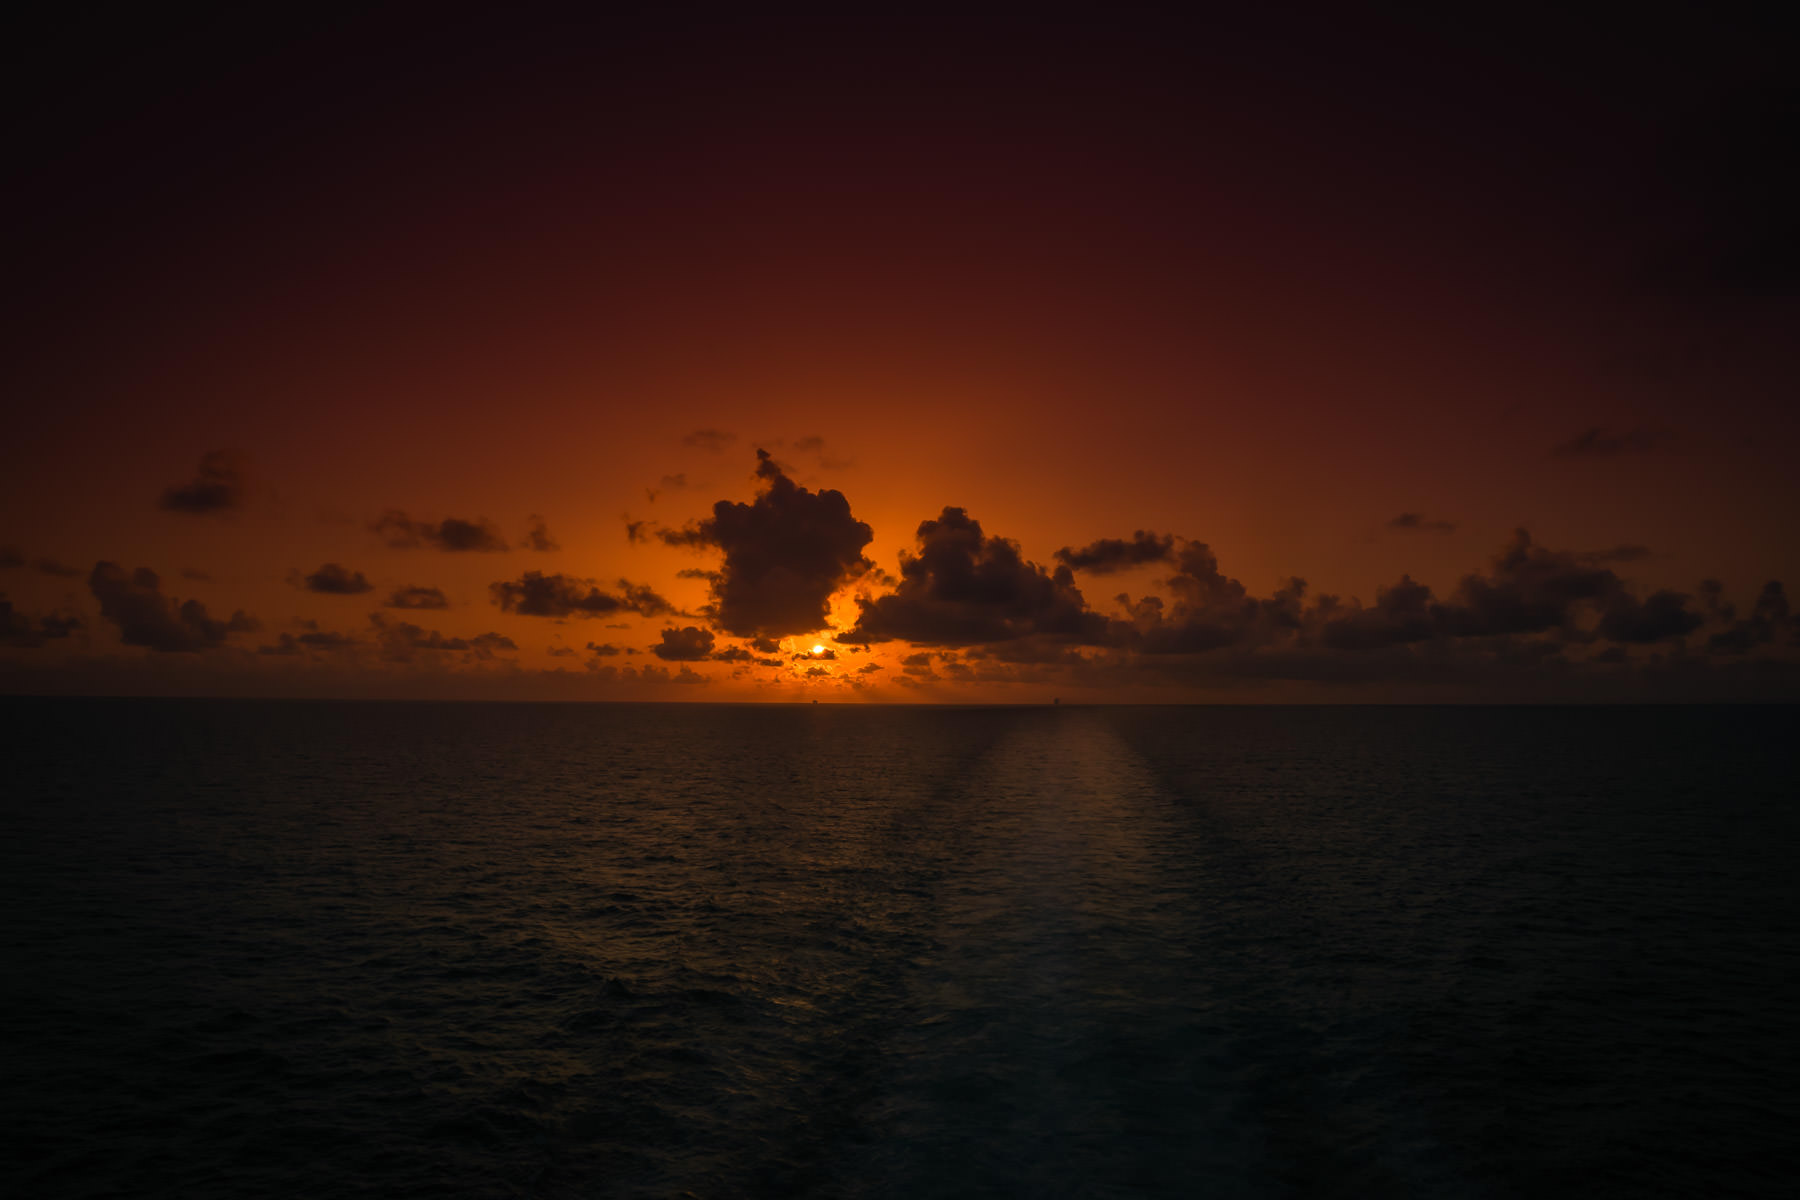 The sun sets on the Gulf of Mexico, somewhere off the Texas coast.